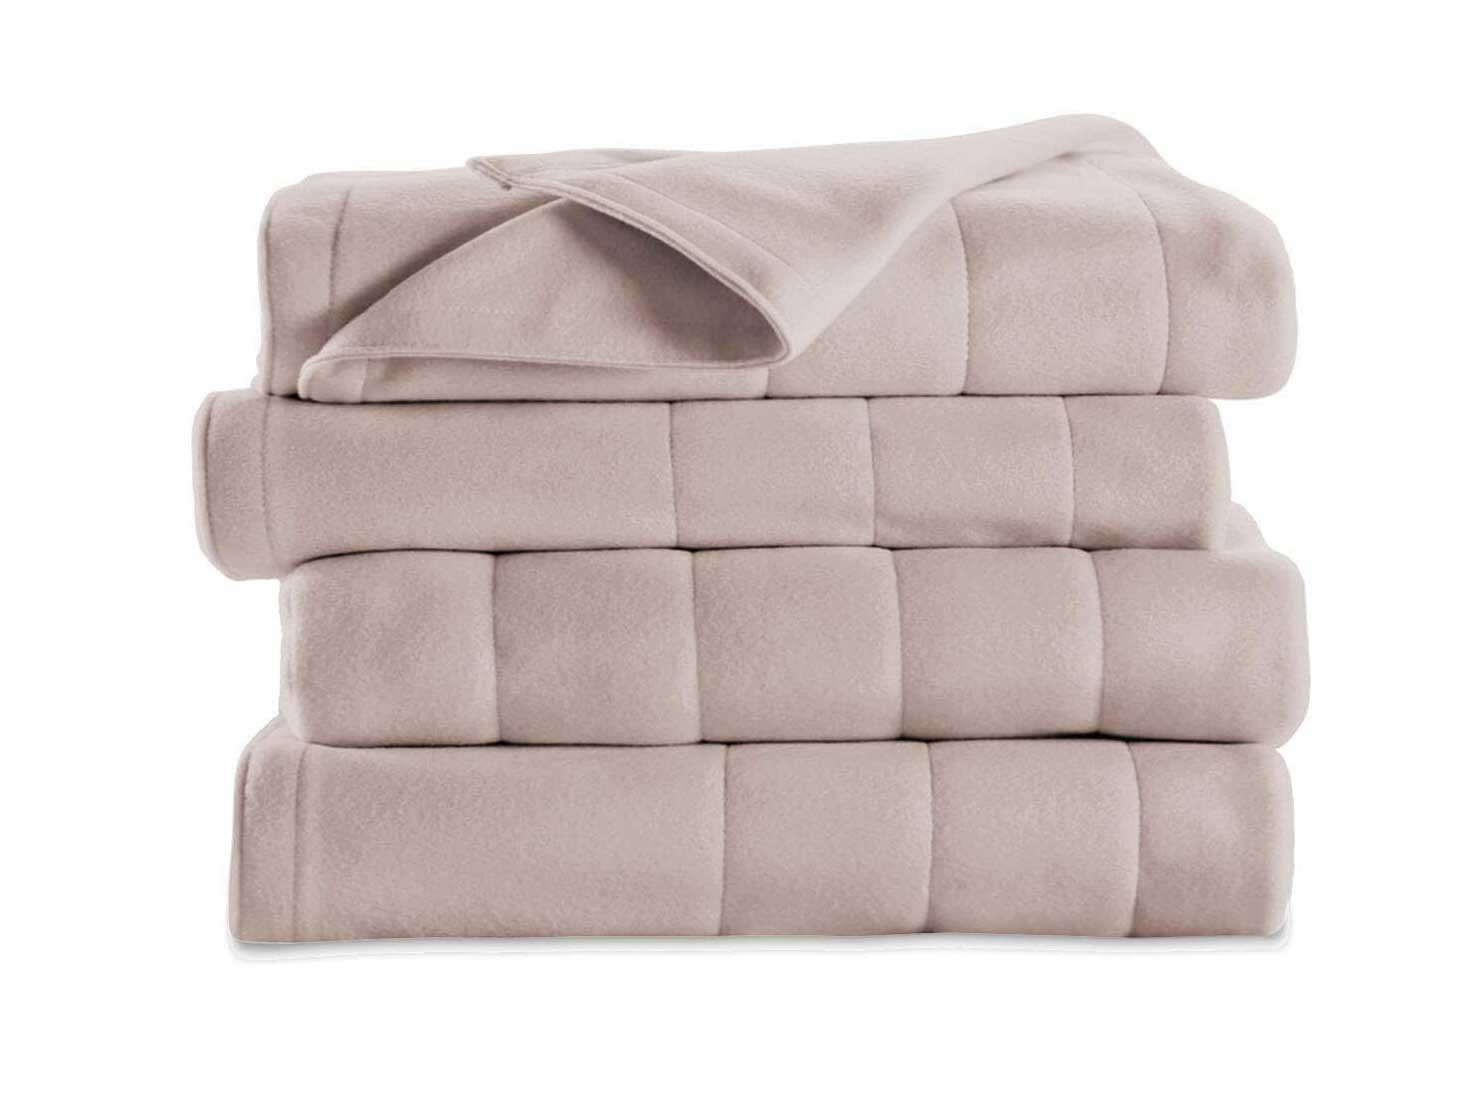 Sunbeam Soft Quilted Fleece Electric Heated Warming Blanket Queen Seashell Washable Auto Shut Off 10 Heat Settings